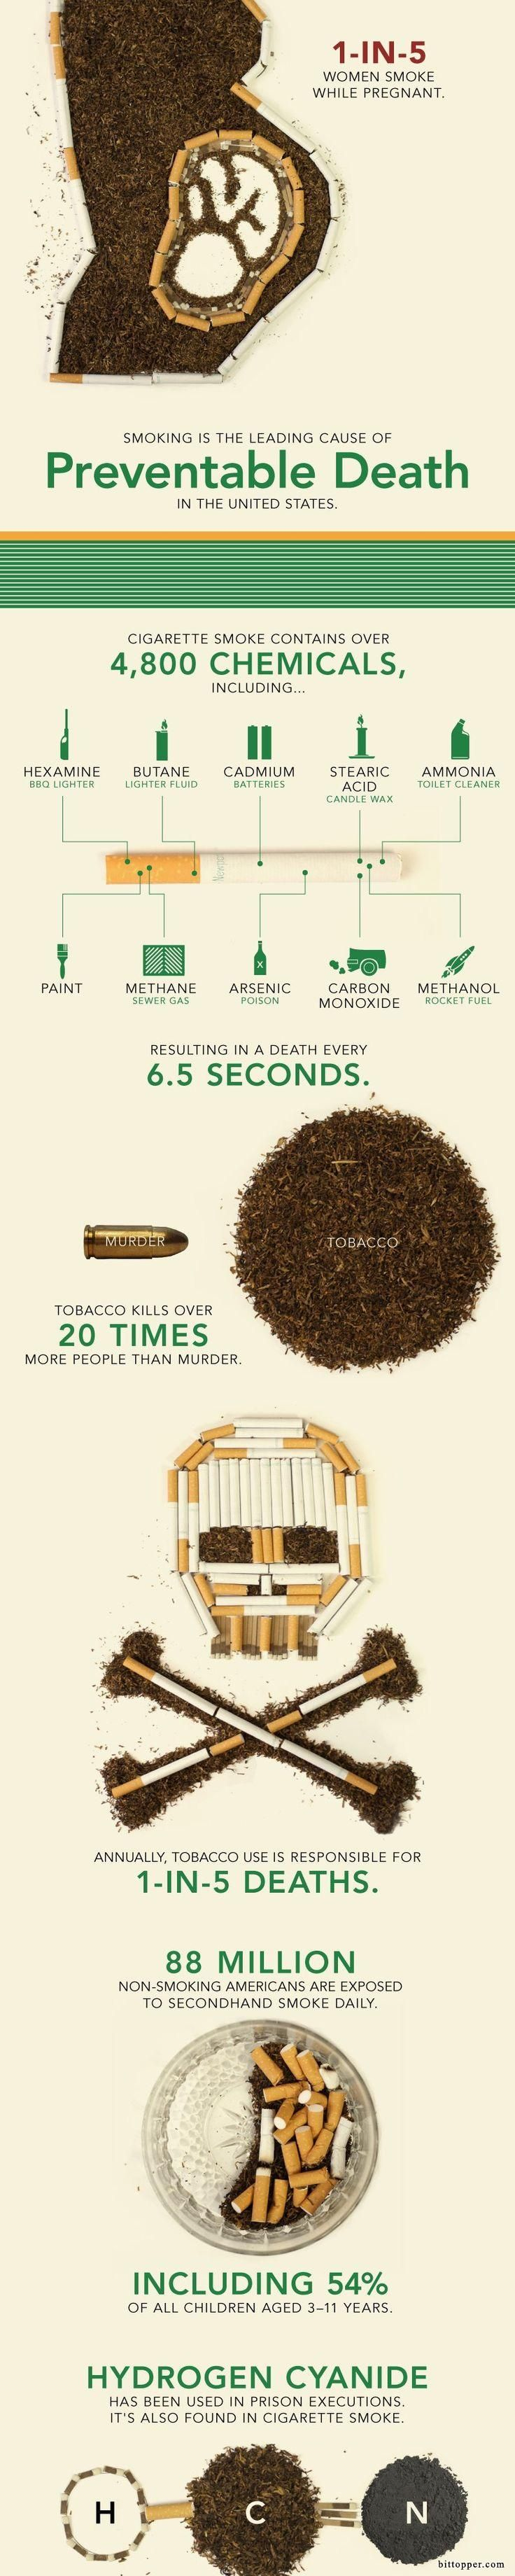 Smoking Infographic via bittopper.com